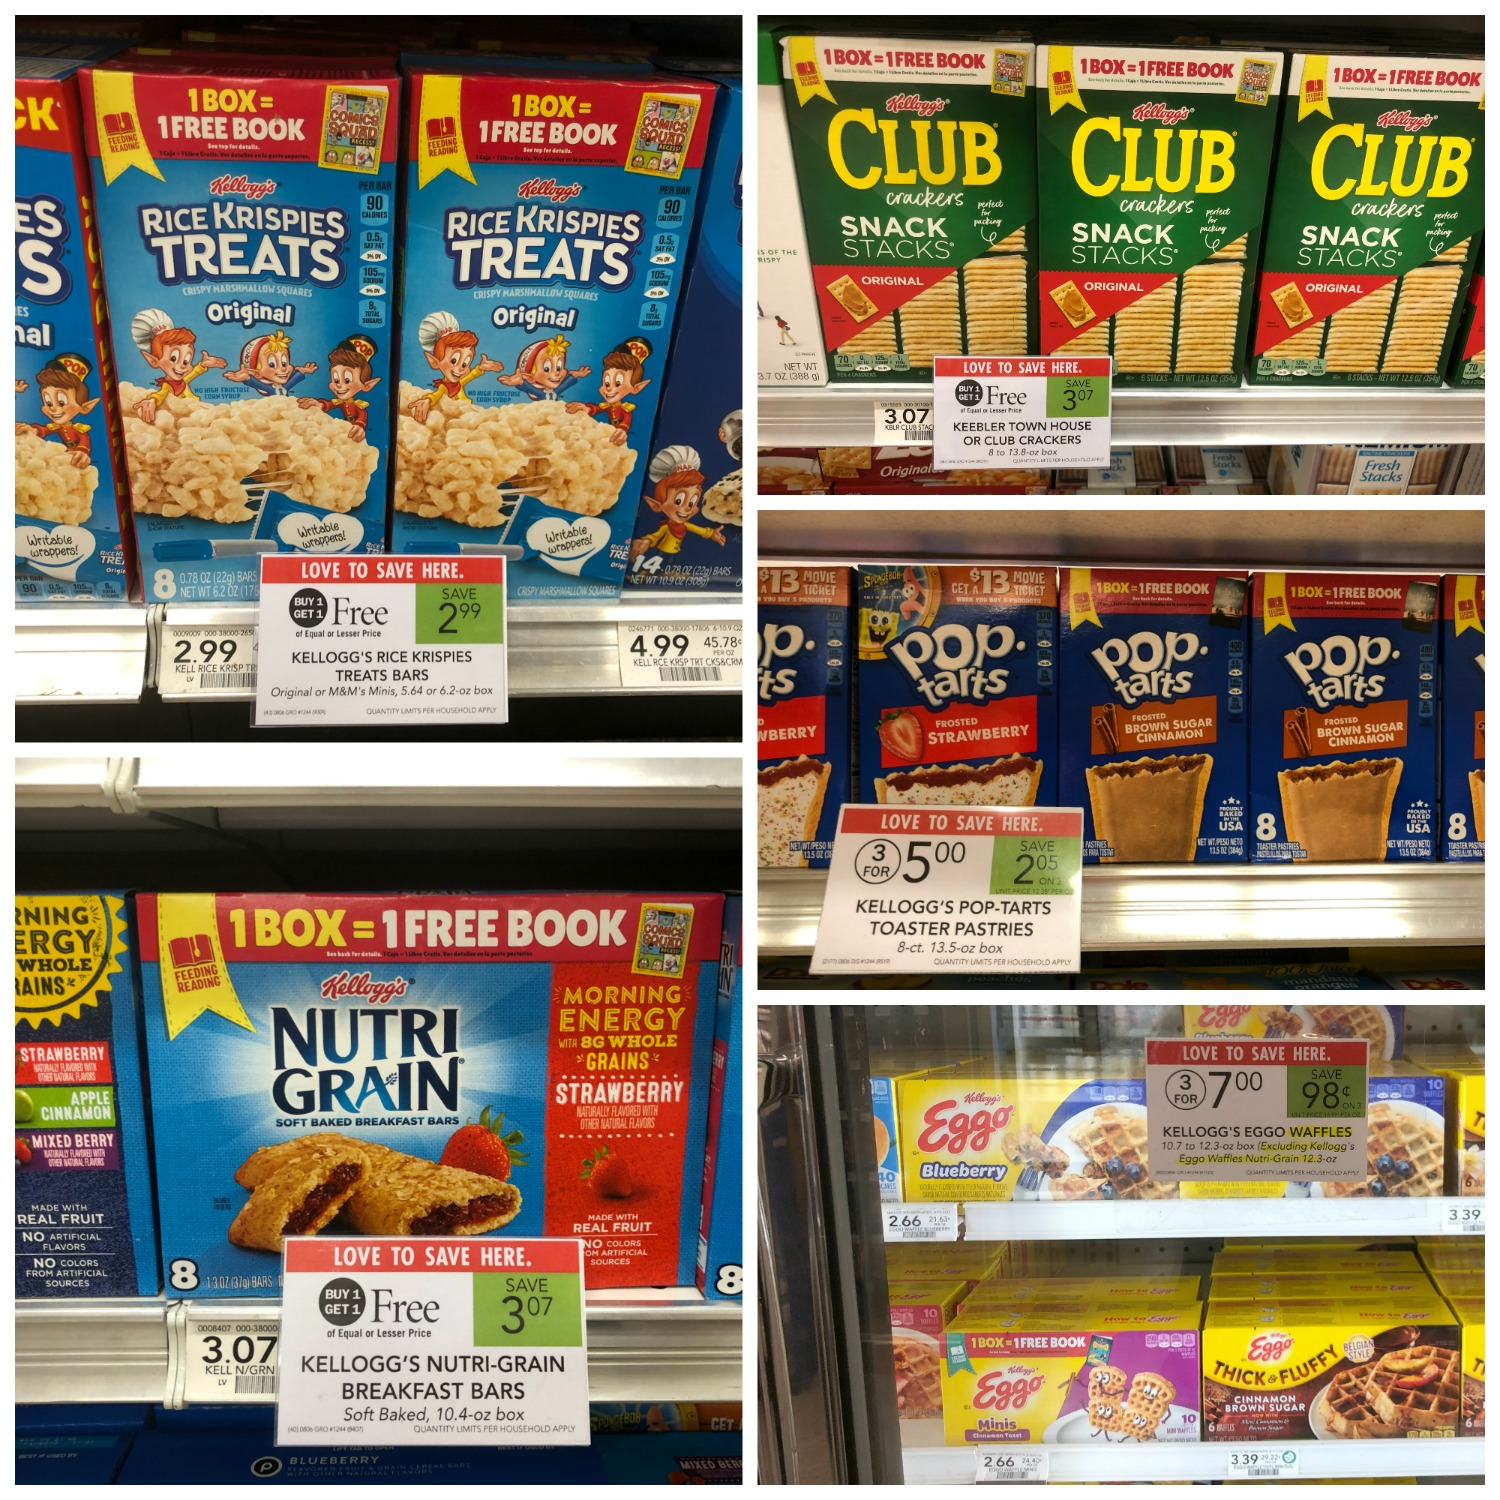 Get Free Books & Fantastic Deals This Week At Publix - Check Out The Kellogg's Feeding Reading Program on I Heart Publix 1